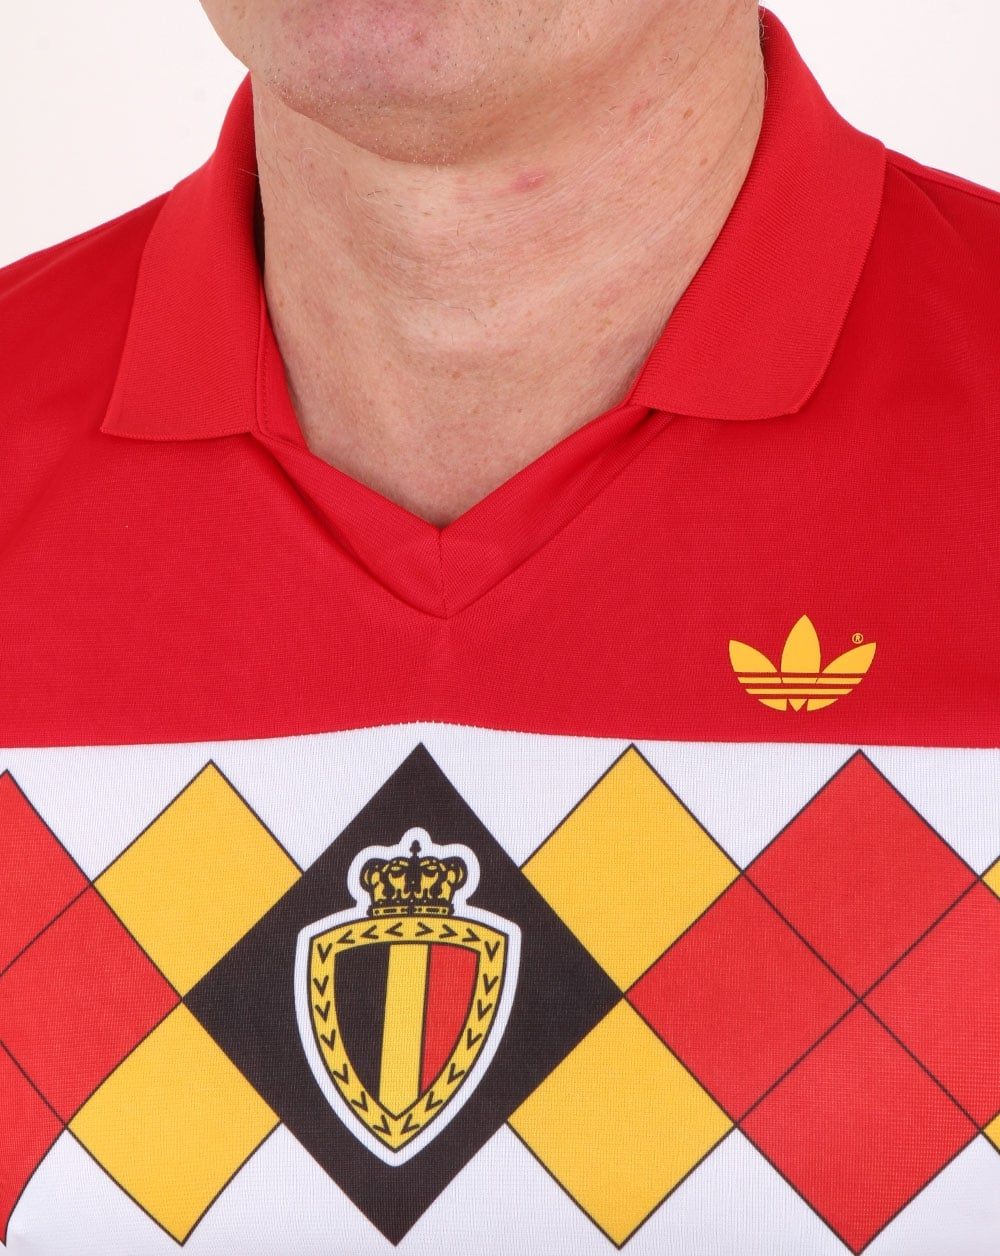 6043a1bbe Adidas Originals Old Skool Belgium Jersey Victory Red